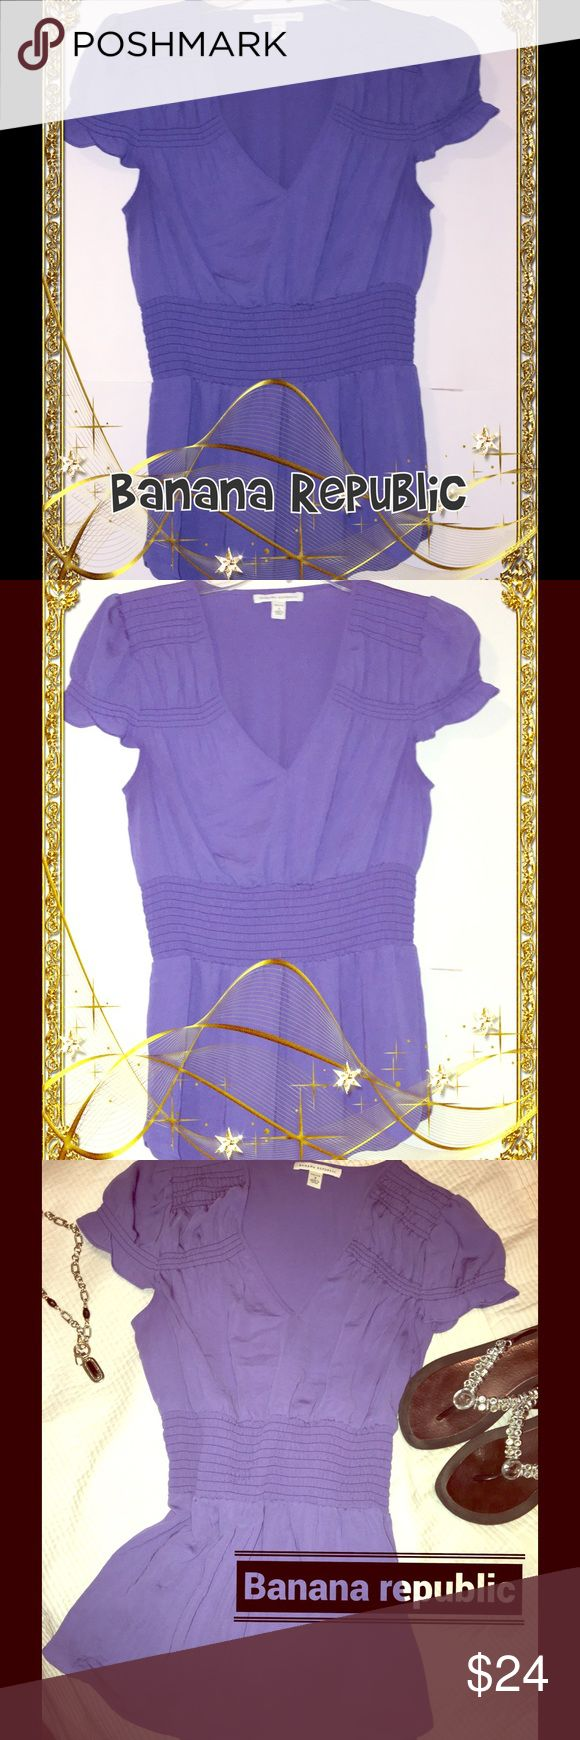 Banana republic V-neck elastic waist slimming top This purple V-neck 100 percent polyester purple women's top is adorable one – it looks really cute with a pair of jeans. Very slimming due to the elastic waistband. Preowned pre-loved – great color must have for spring and summer – no trades, low balls no response. Please like to save. Selling as is – super cute Banana Republic Tops Tank Tops